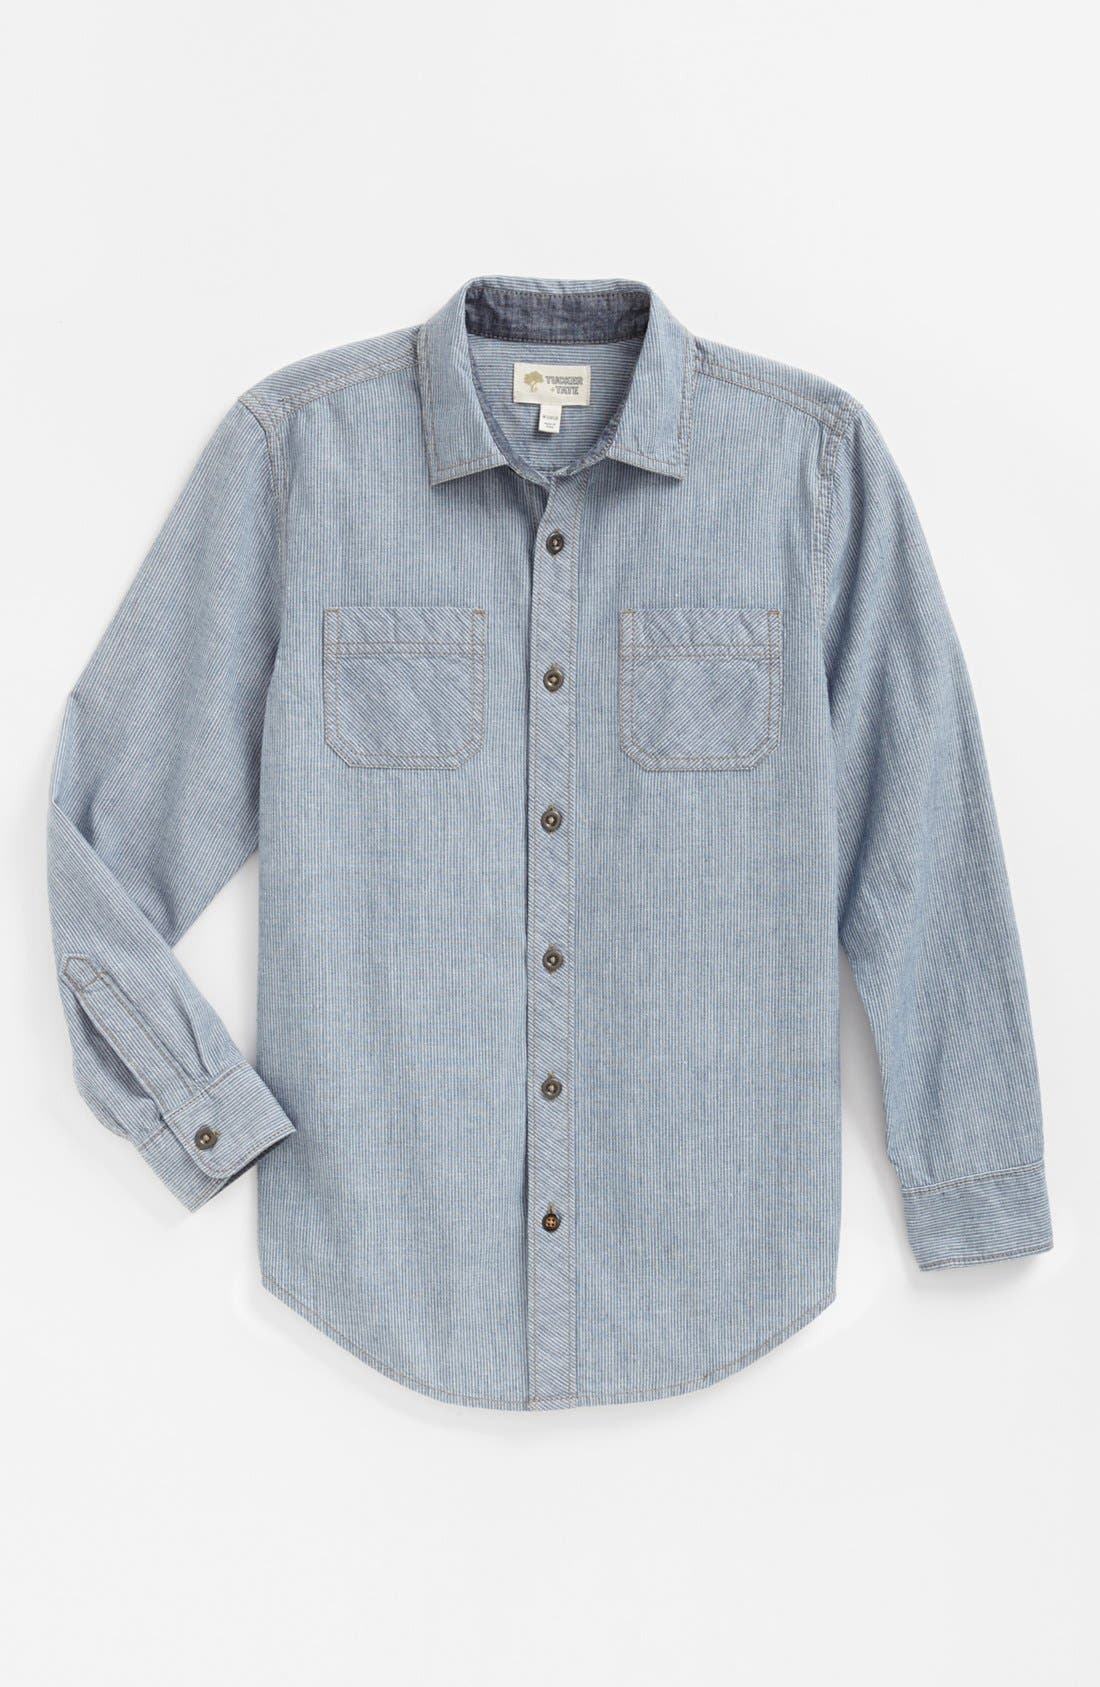 Alternate Image 1 Selected - Tucker + Tate 'Bluewater' Woven Shirt (Big Boys)